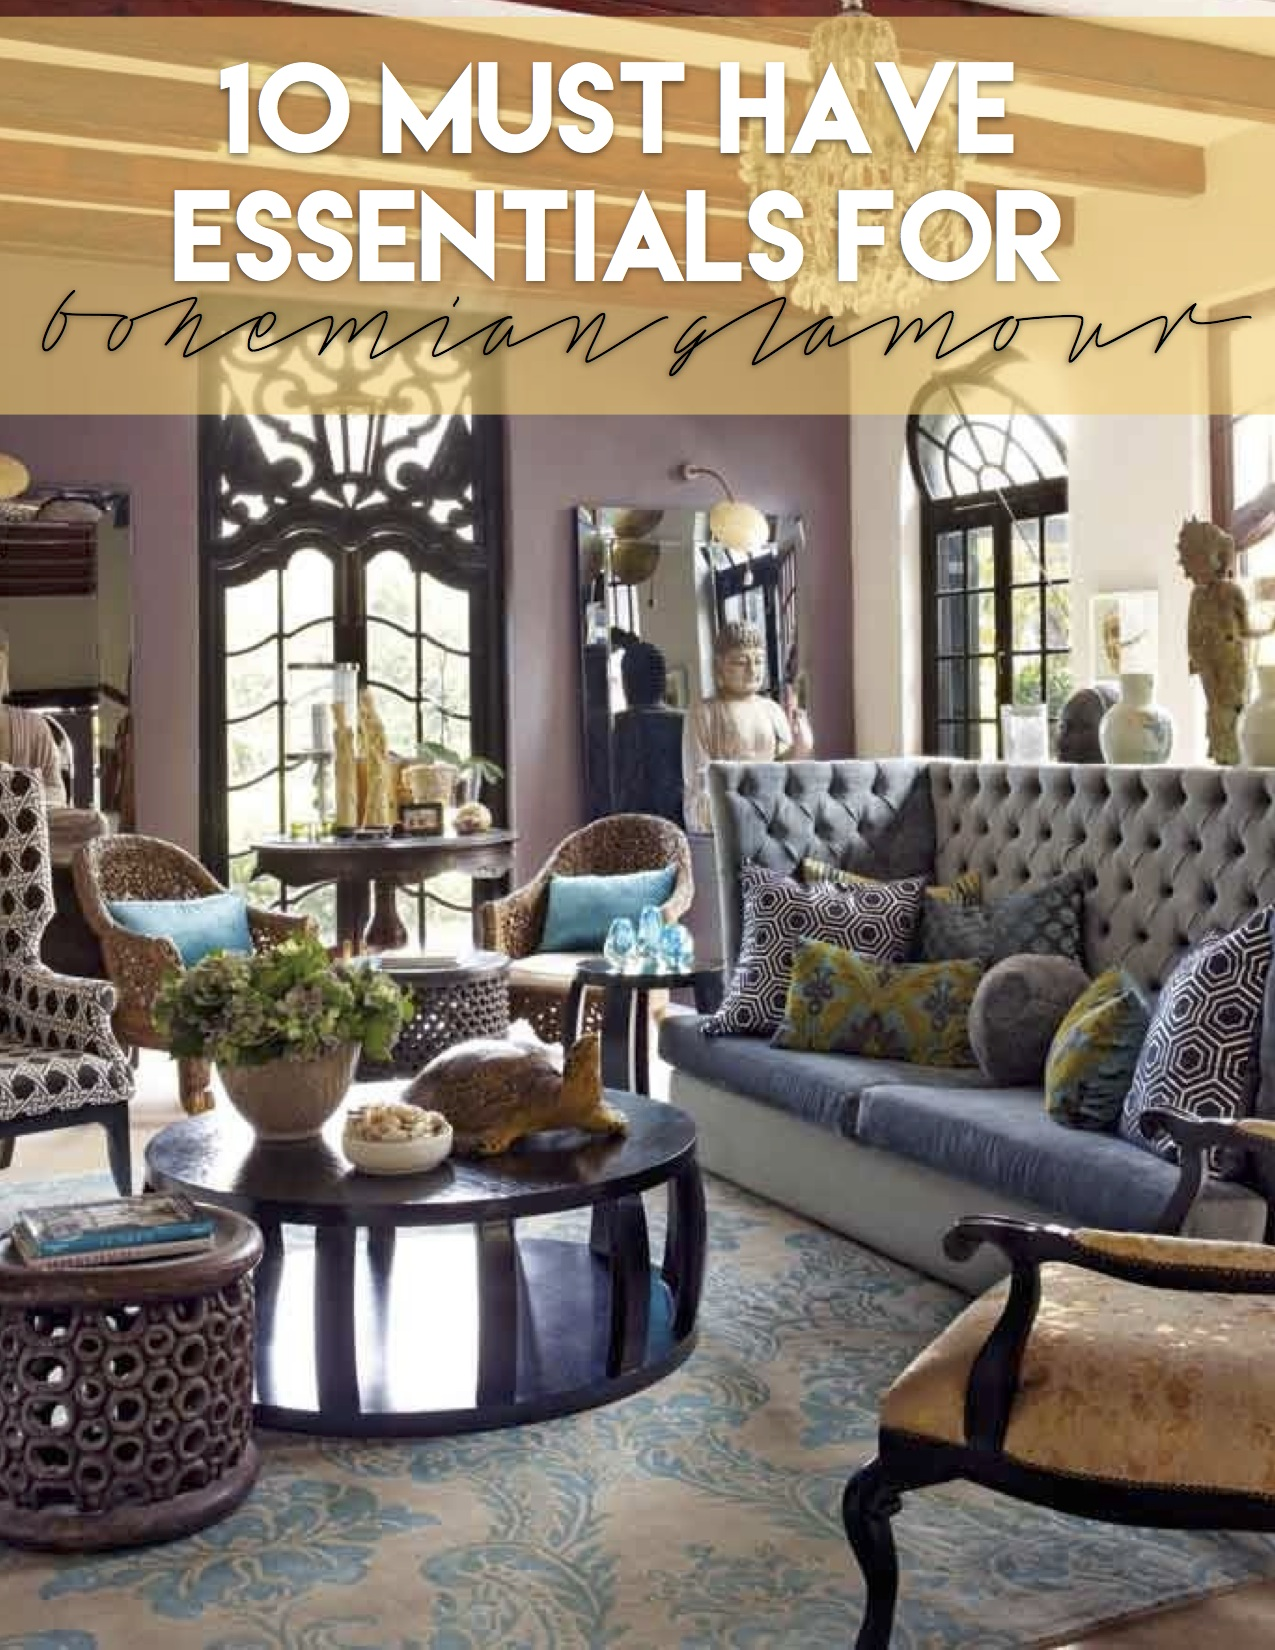 Bohemian Glamour 10 Must Have Decorating Essentials